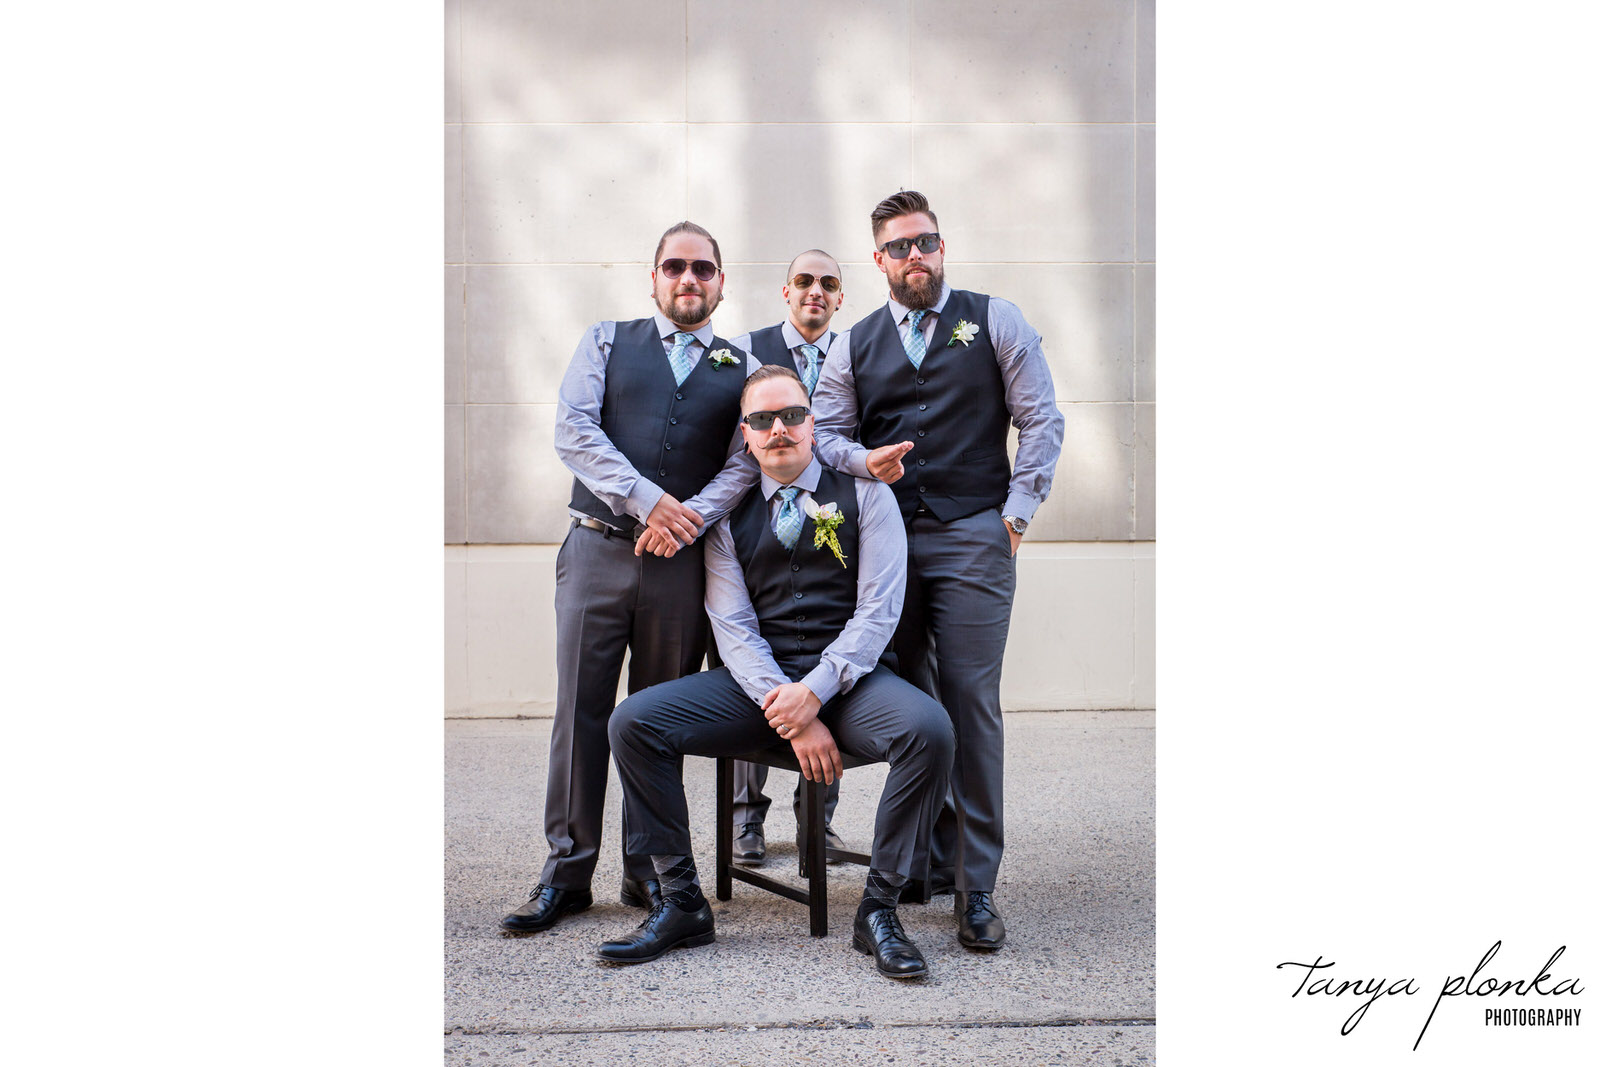 groomsmen pose around groom sitting on chair in alley